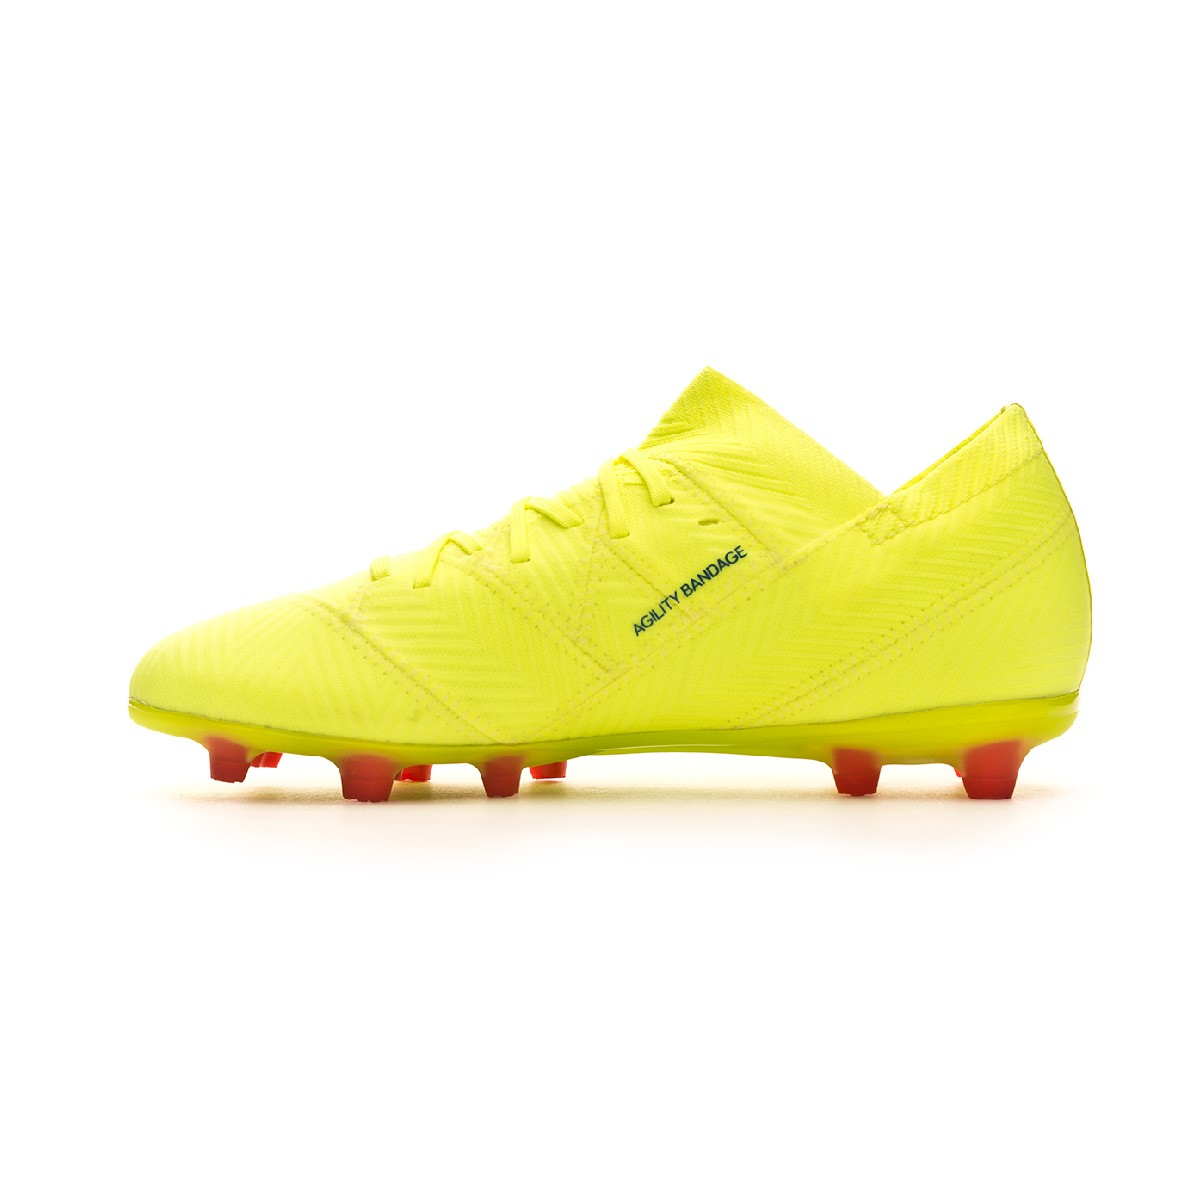 4939db8a98e541 Boot adidas Kids Nemeziz 18.1 FG Solar yellow-Football blue-Active red -  Football store Fútbol Emotion